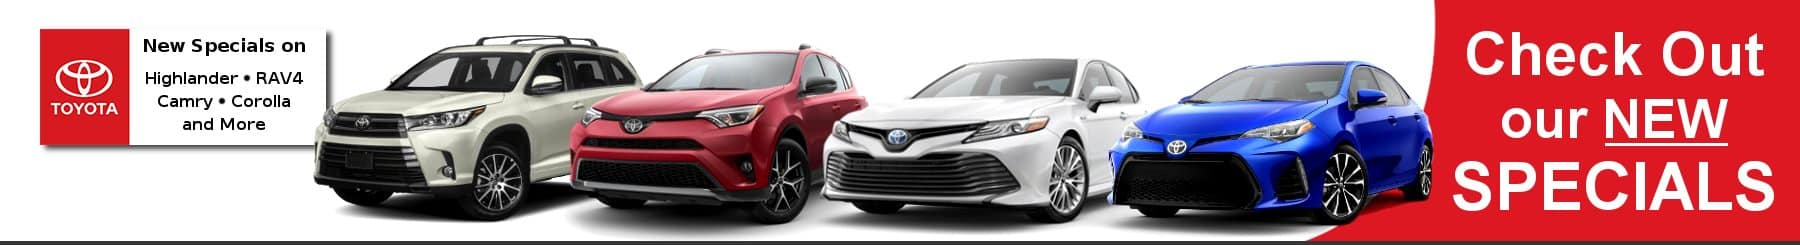 New 2018 Toyota Model Specials